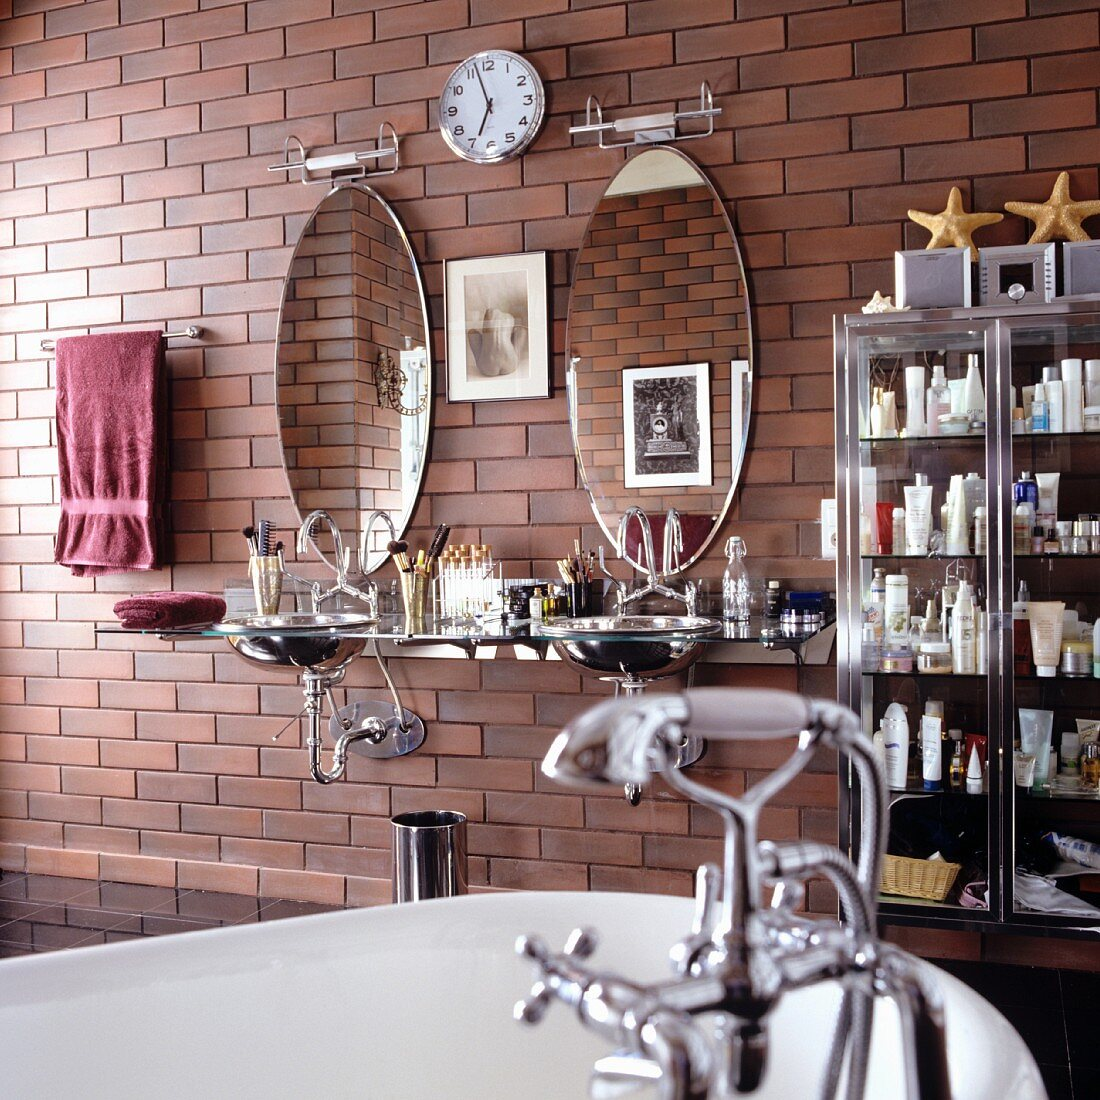 Vintage style bathroom - partially visible bathtub with vintage tap fittings and modern washstand with oval mirrors on brick-effect wall